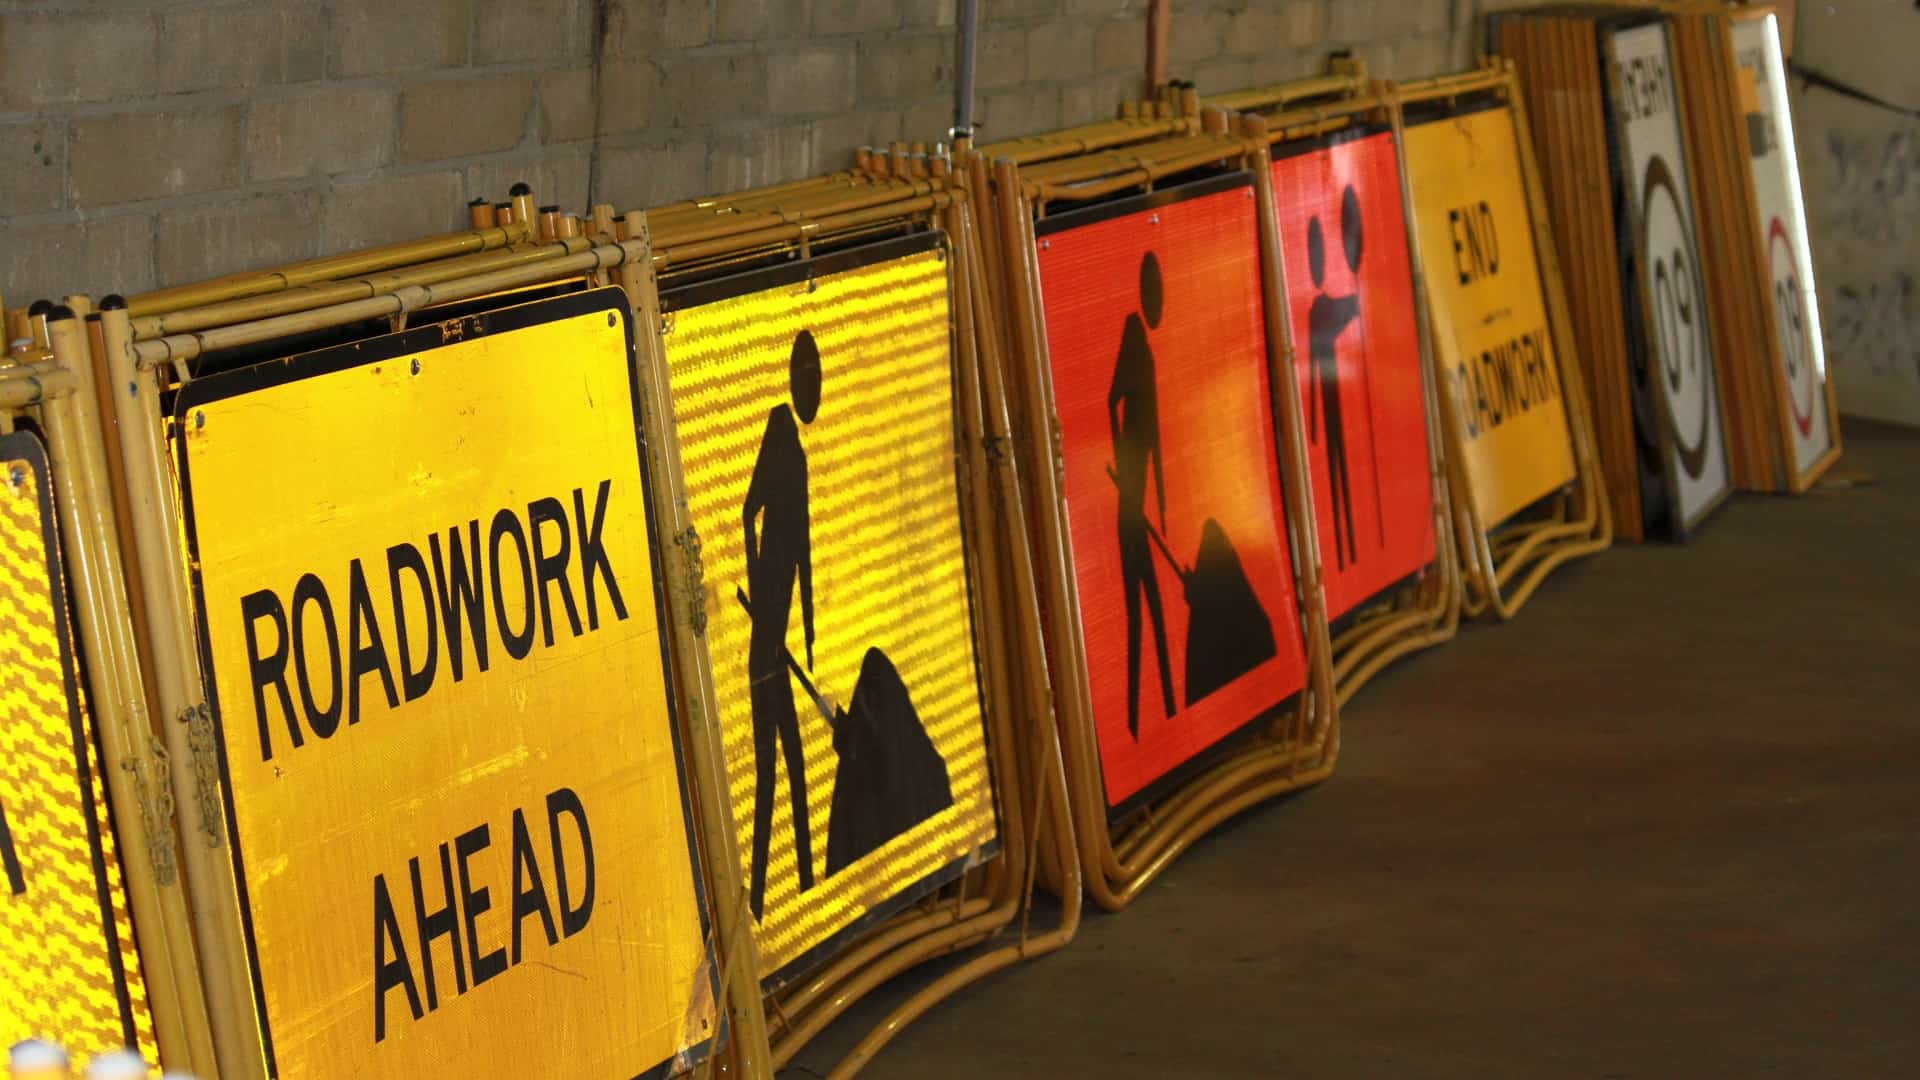 Roadwork Ahead and other traffic management signs